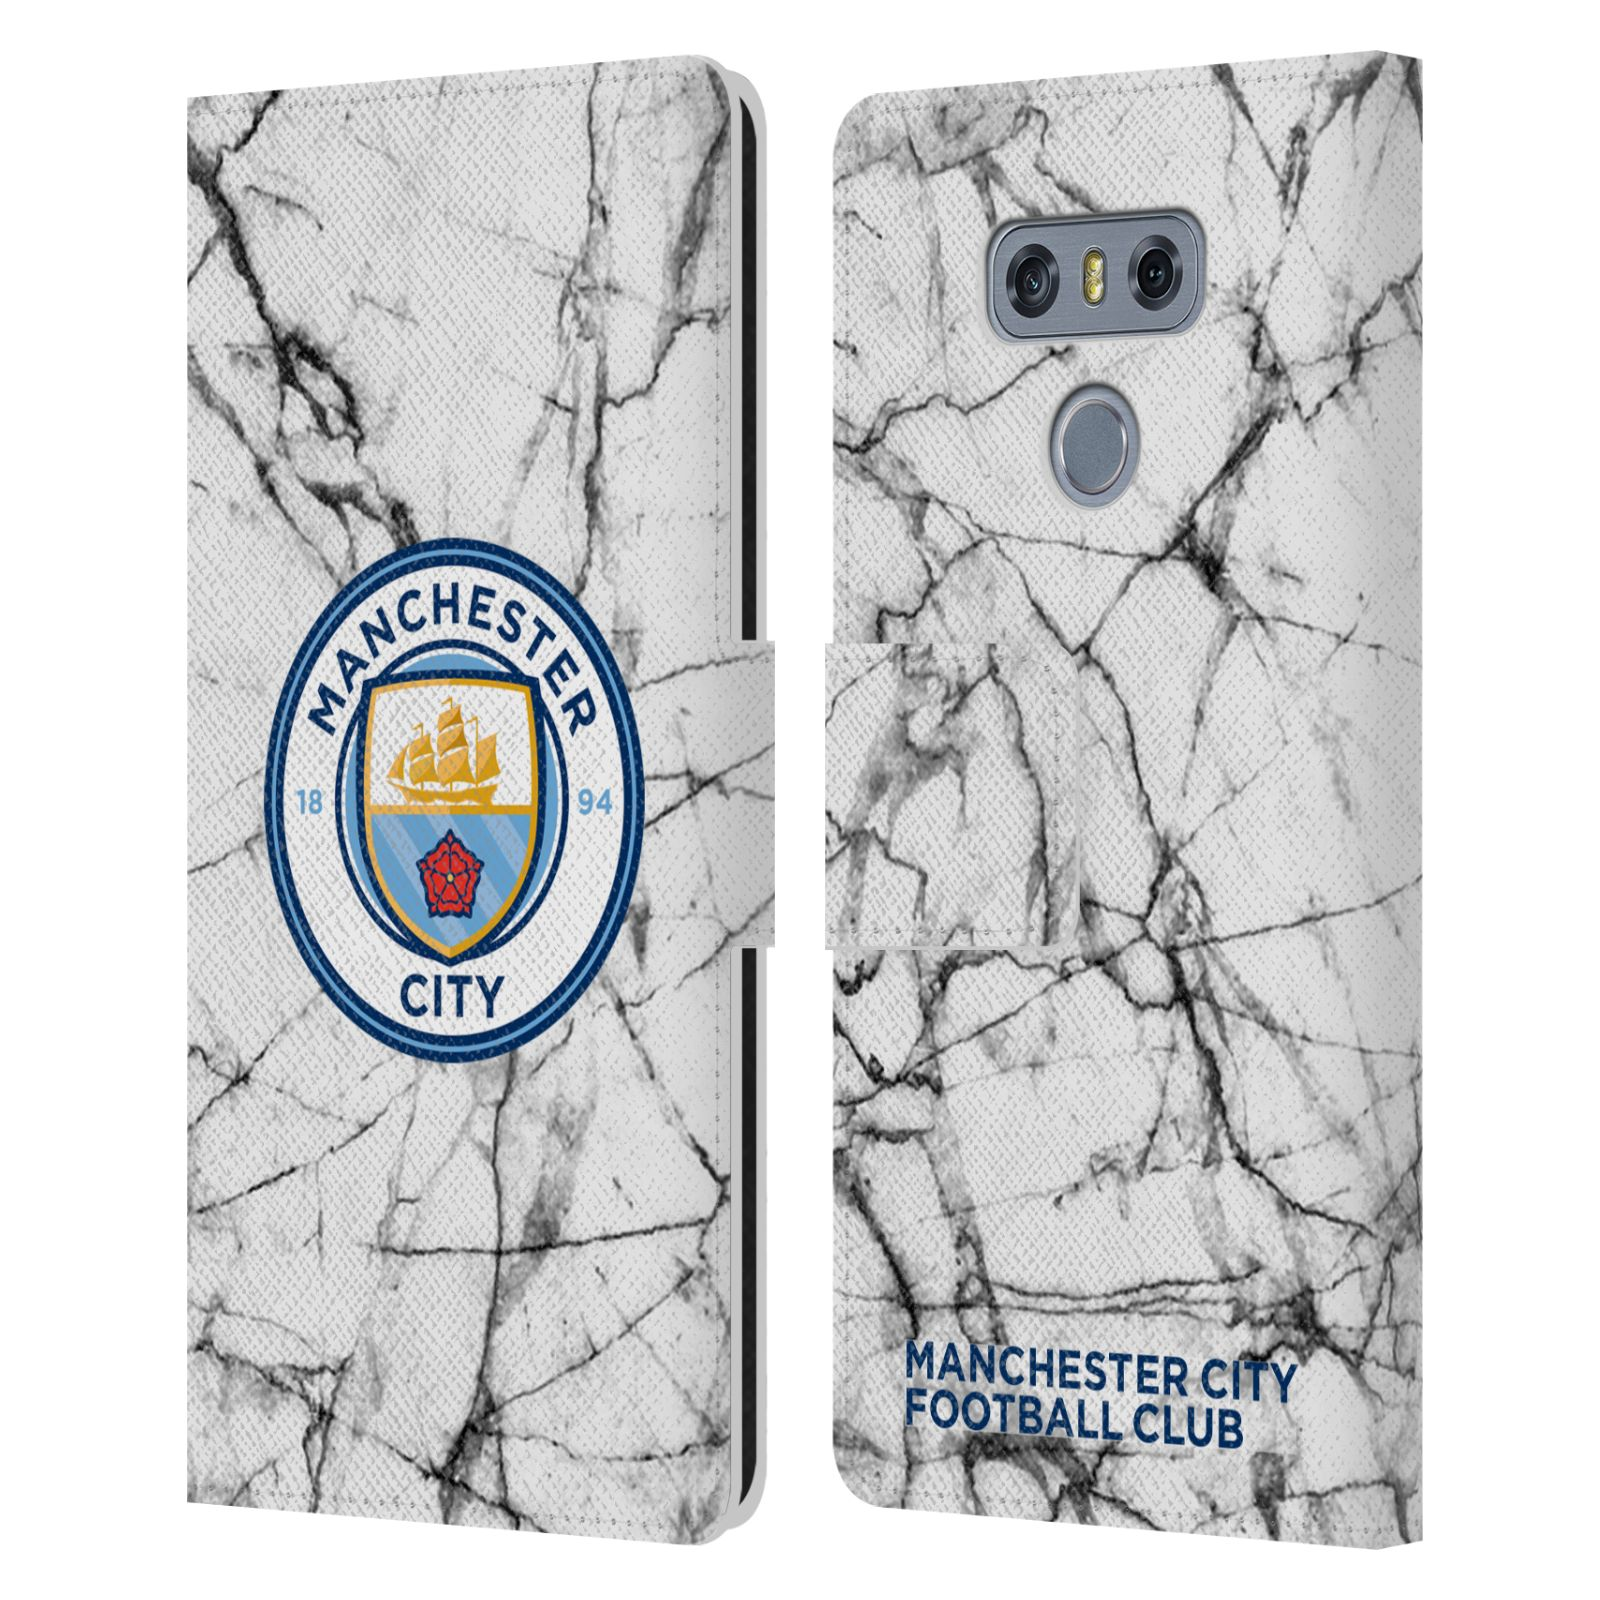 MAN-CITY-FC-2017-18-MARBLE-BADGE-LEATHER-BOOK-WALLET-CASE-COVER-FOR-LG-PHONES-1